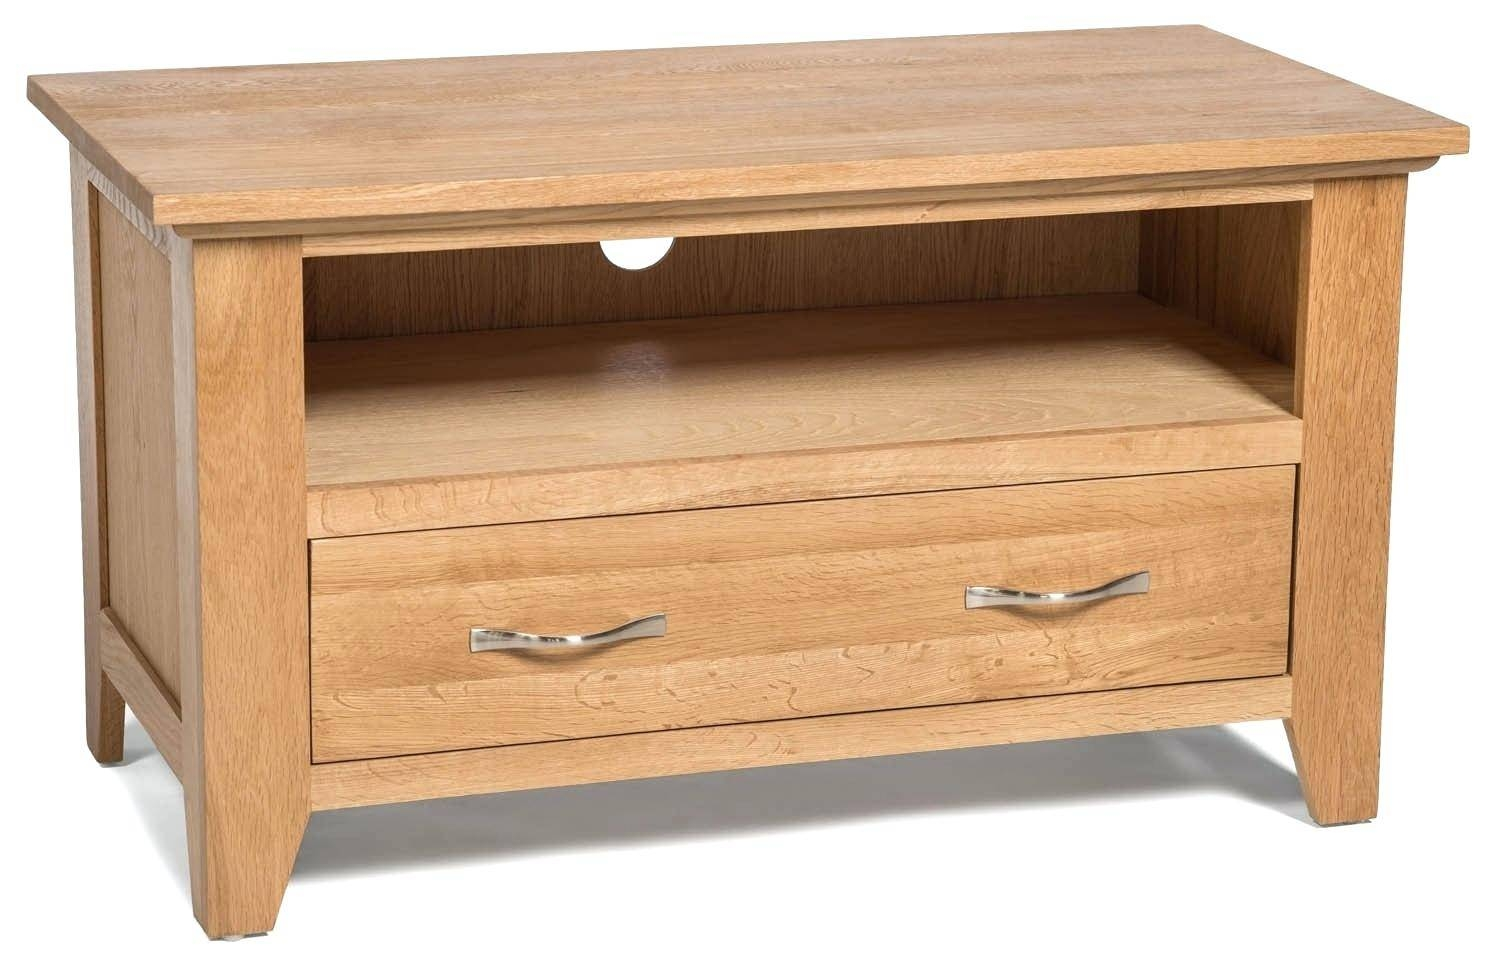 Tv Stand : Superb Galway Natural Solid Oak Corner Tv Cabinet With Regard To Small Oak Corner Tv Stands (View 13 of 15)